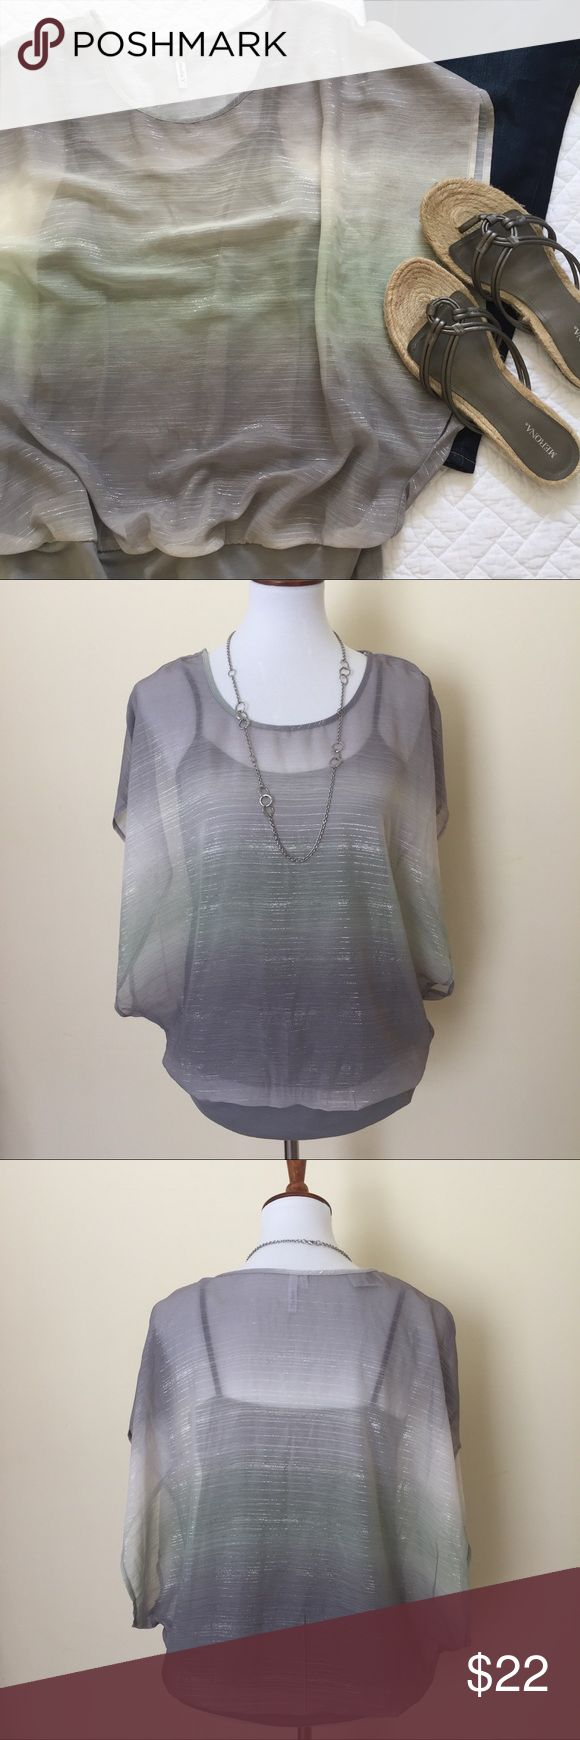 NWT Layered Tank/Batwing Top Super cute poly/rayon blend shear batwing top with attached tank - silver/grey/pale green - scoop neck - banded waist - tank is built in at waist - NWT Tops